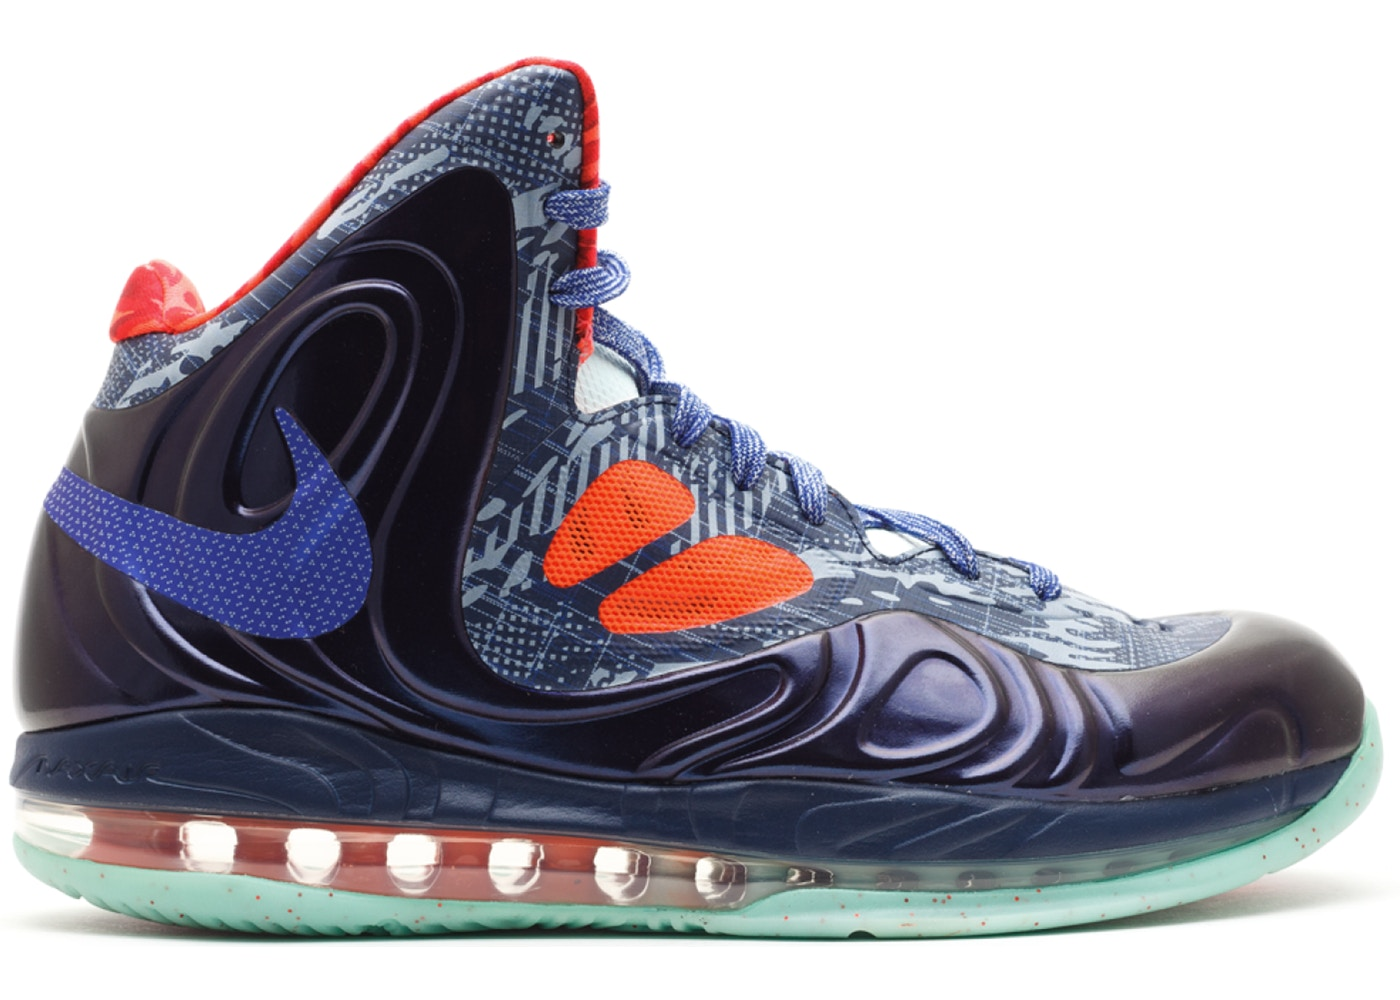 uk availability 5bd42 4a78a Air Max Hyperposite Glow-In-the-Dark - 524862-402